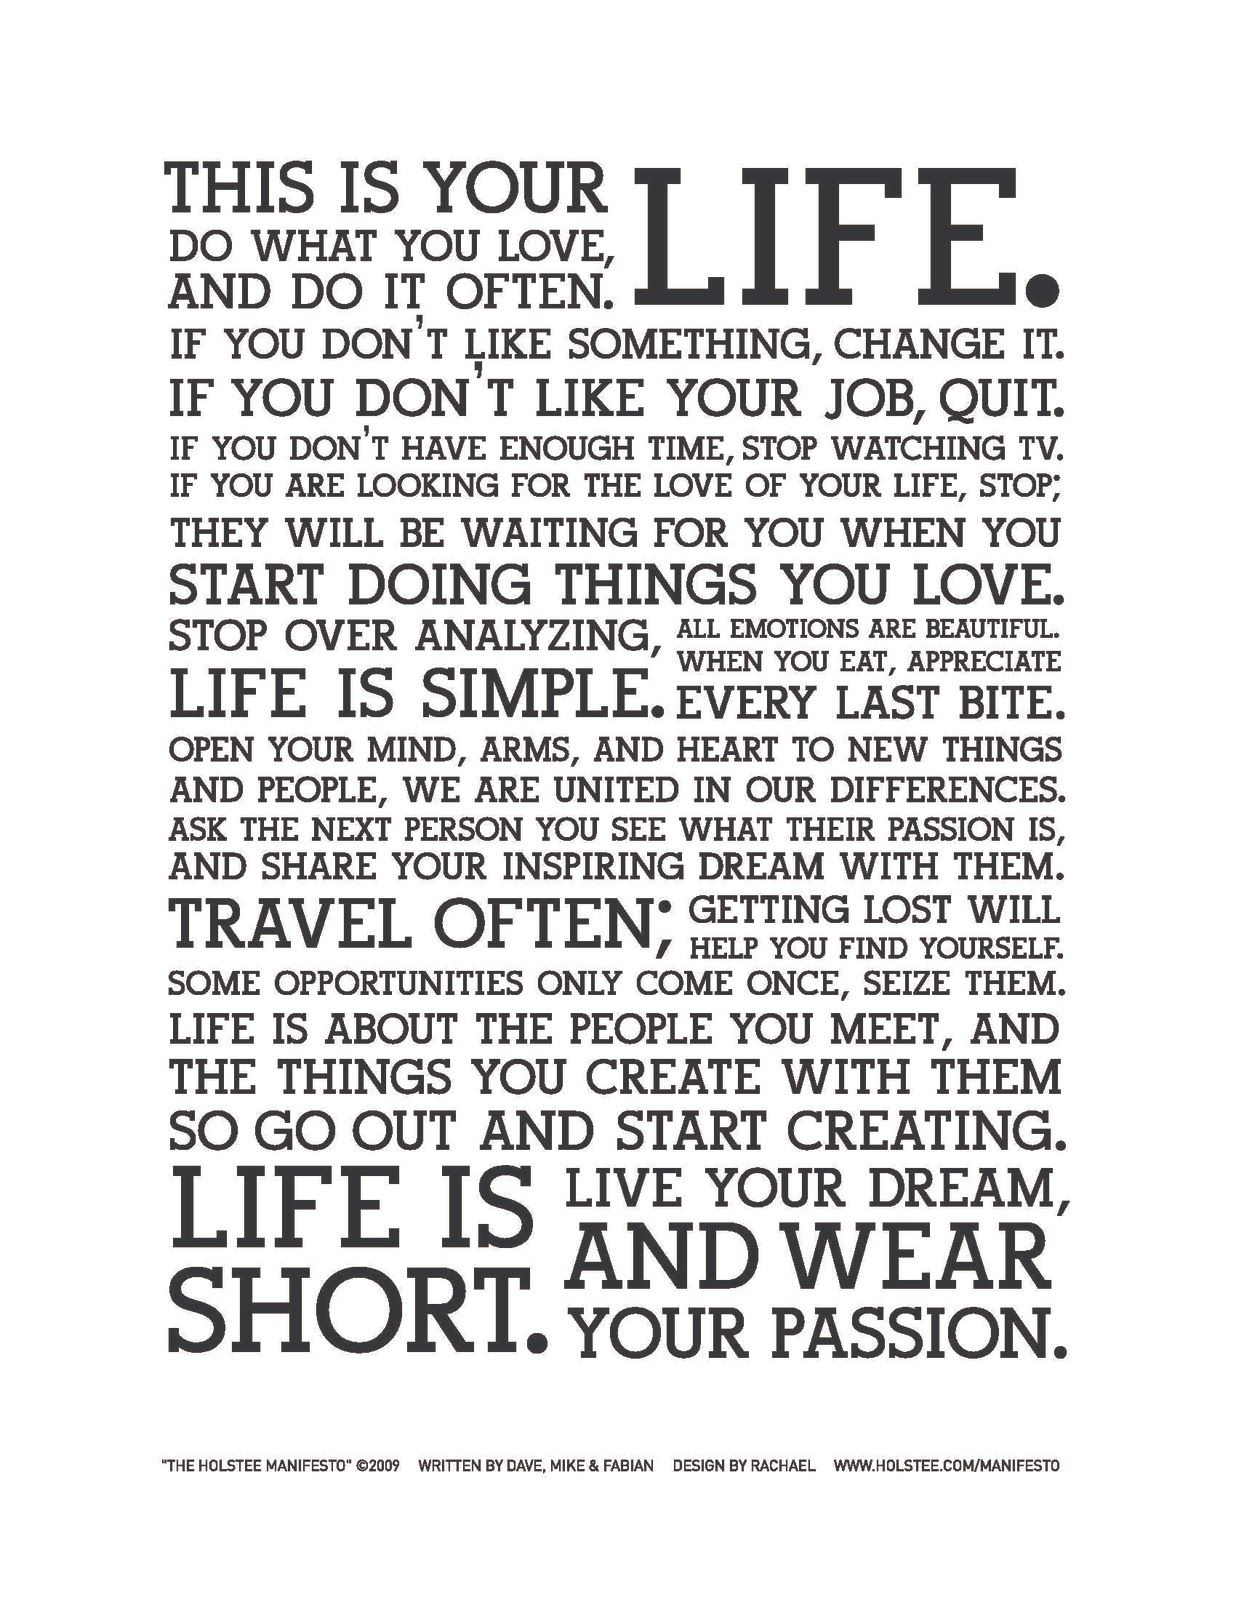 This Is Your Life Quote Poster Manifesto Poster 18X24  Wisdom Inspirational And Thoughts